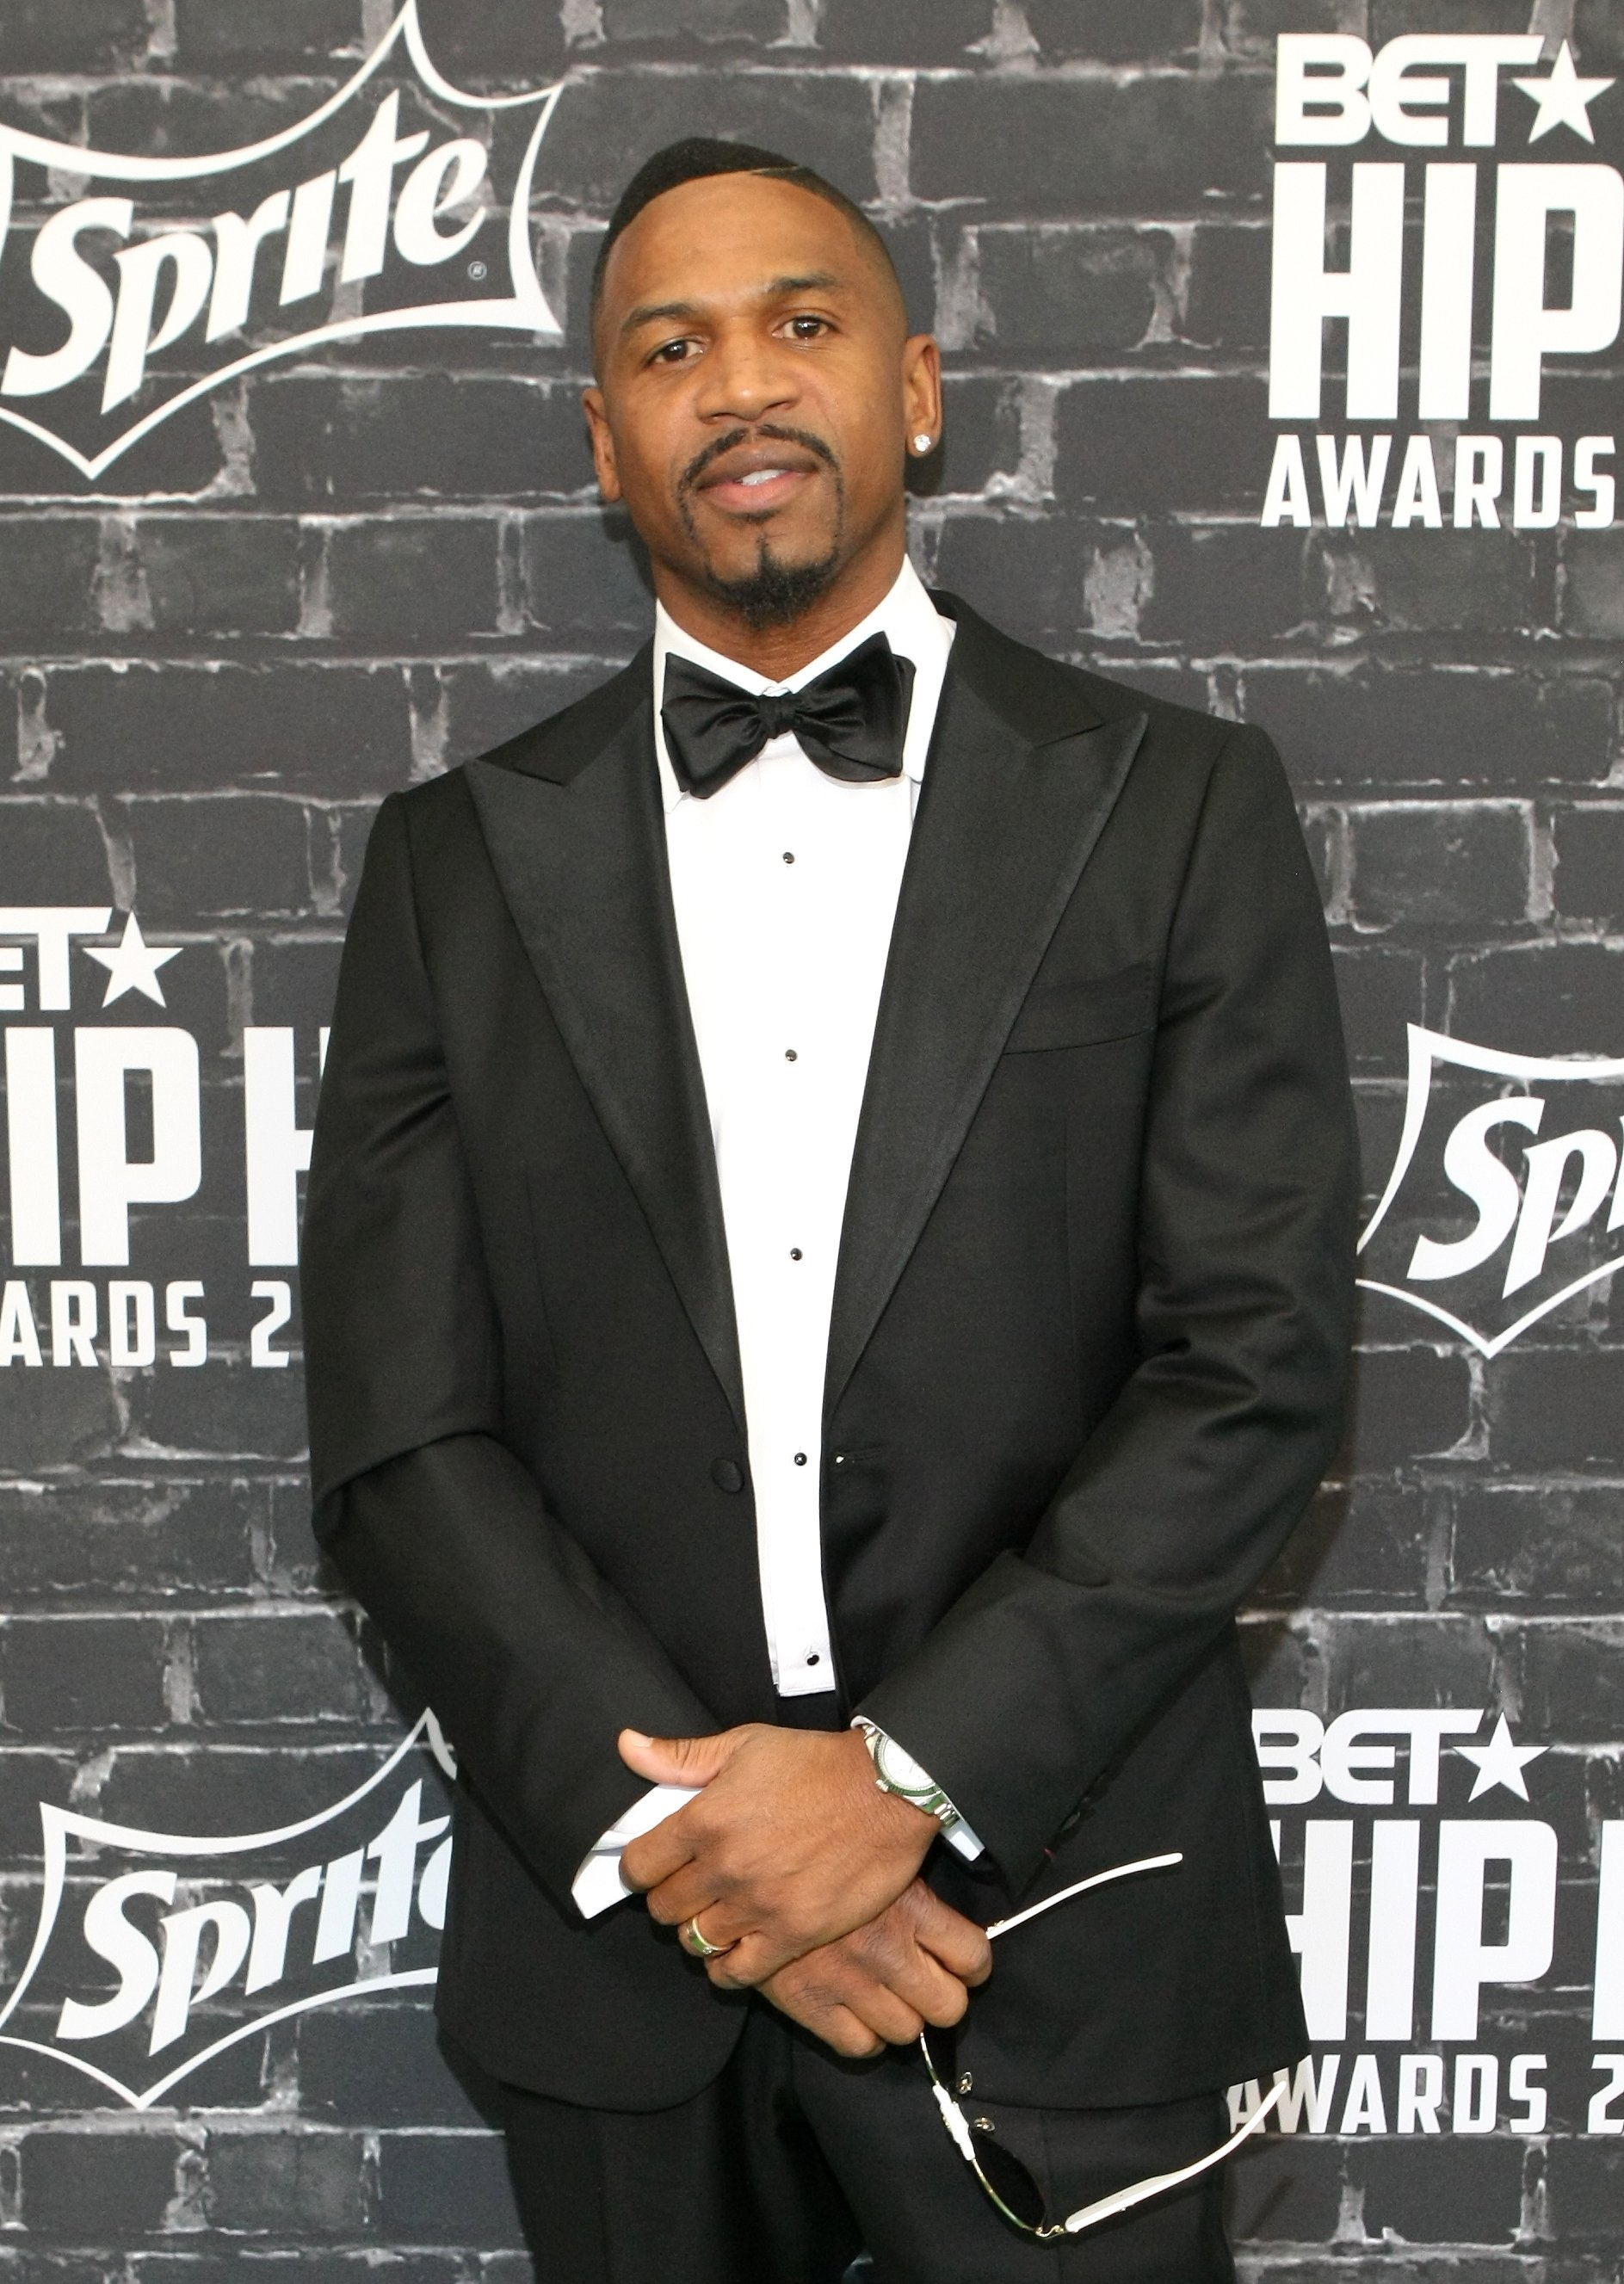 Stevie j attends the 2014 BET Hip Hop Awards  on September 20, 2014 in Atlanta, Georgia. | Photo: Getty Images